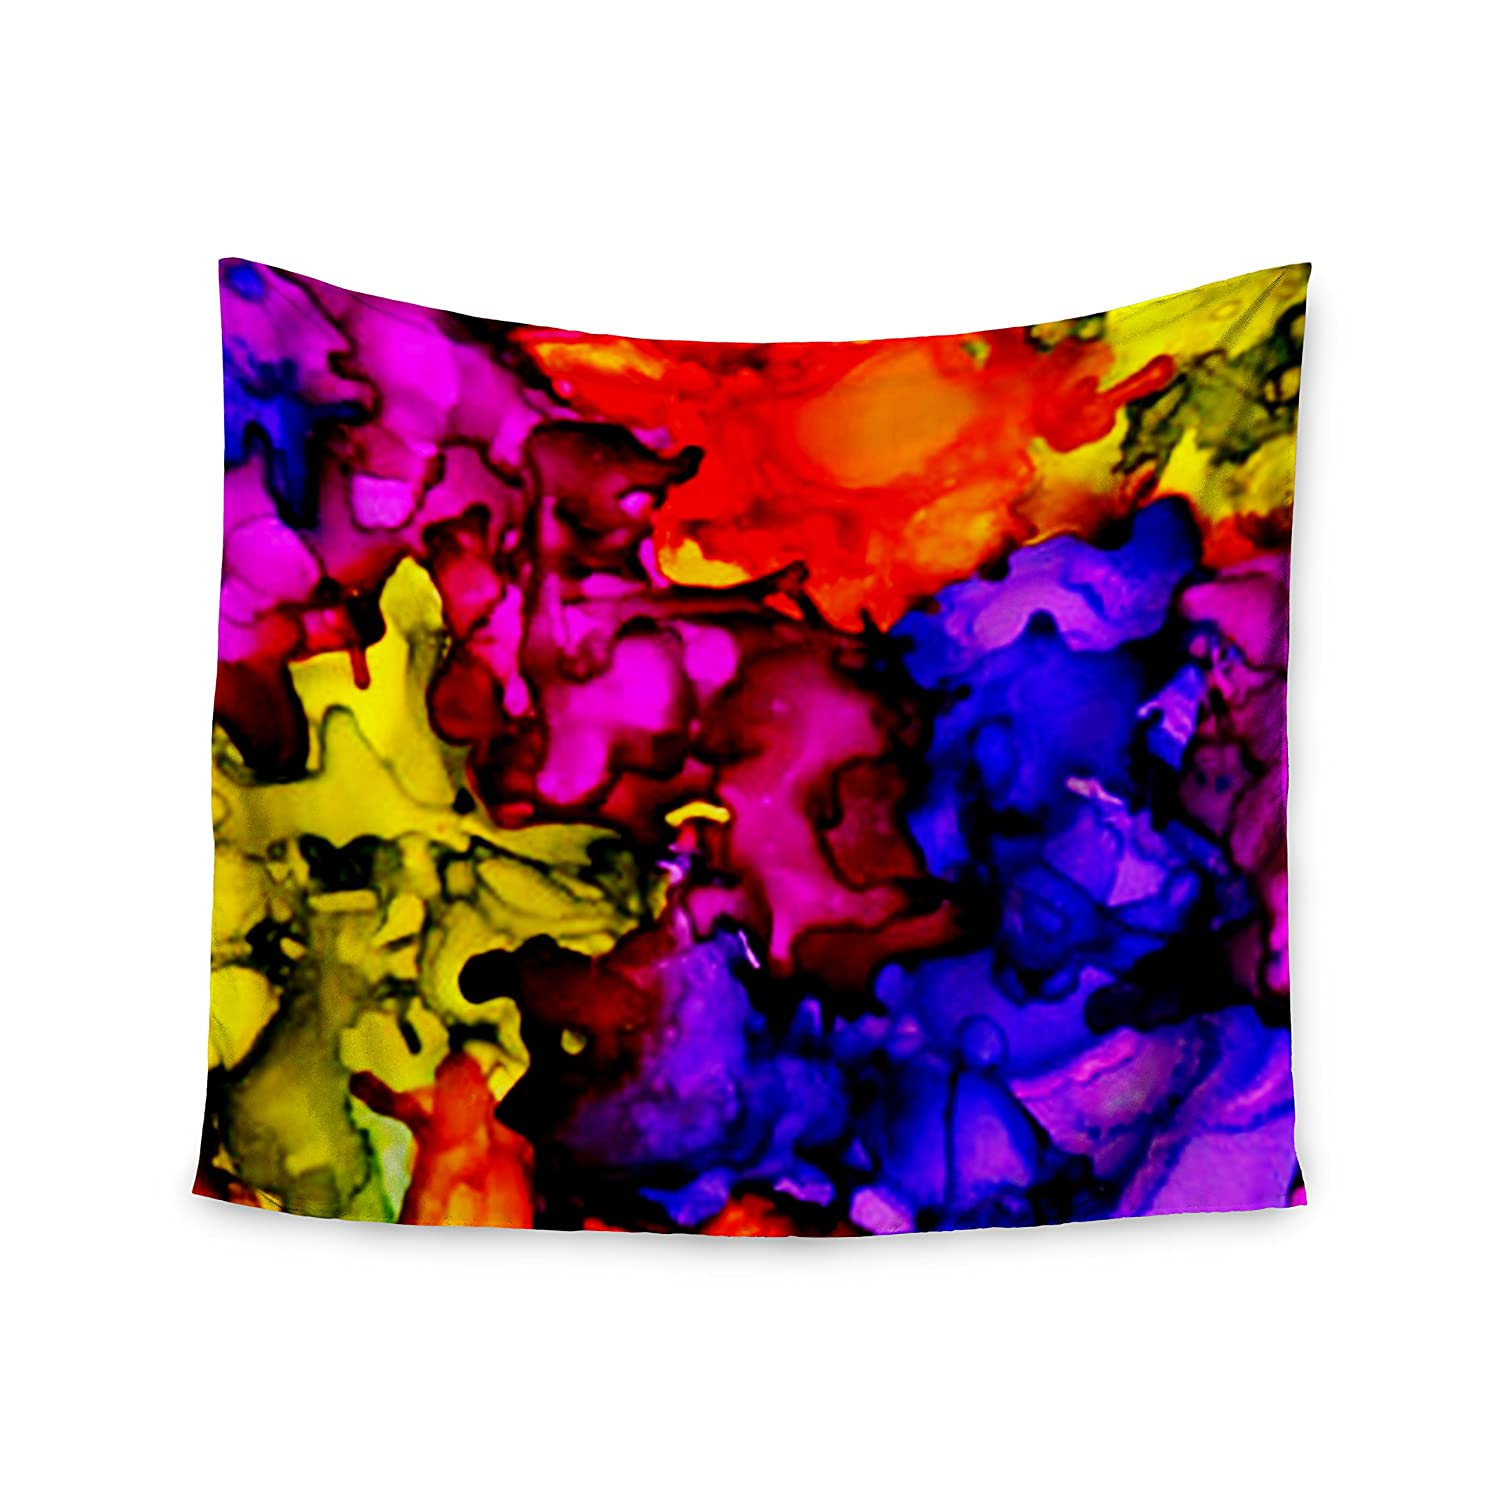 51 X 60 Kess InHouse Claire Day Chica Wall Tapestry